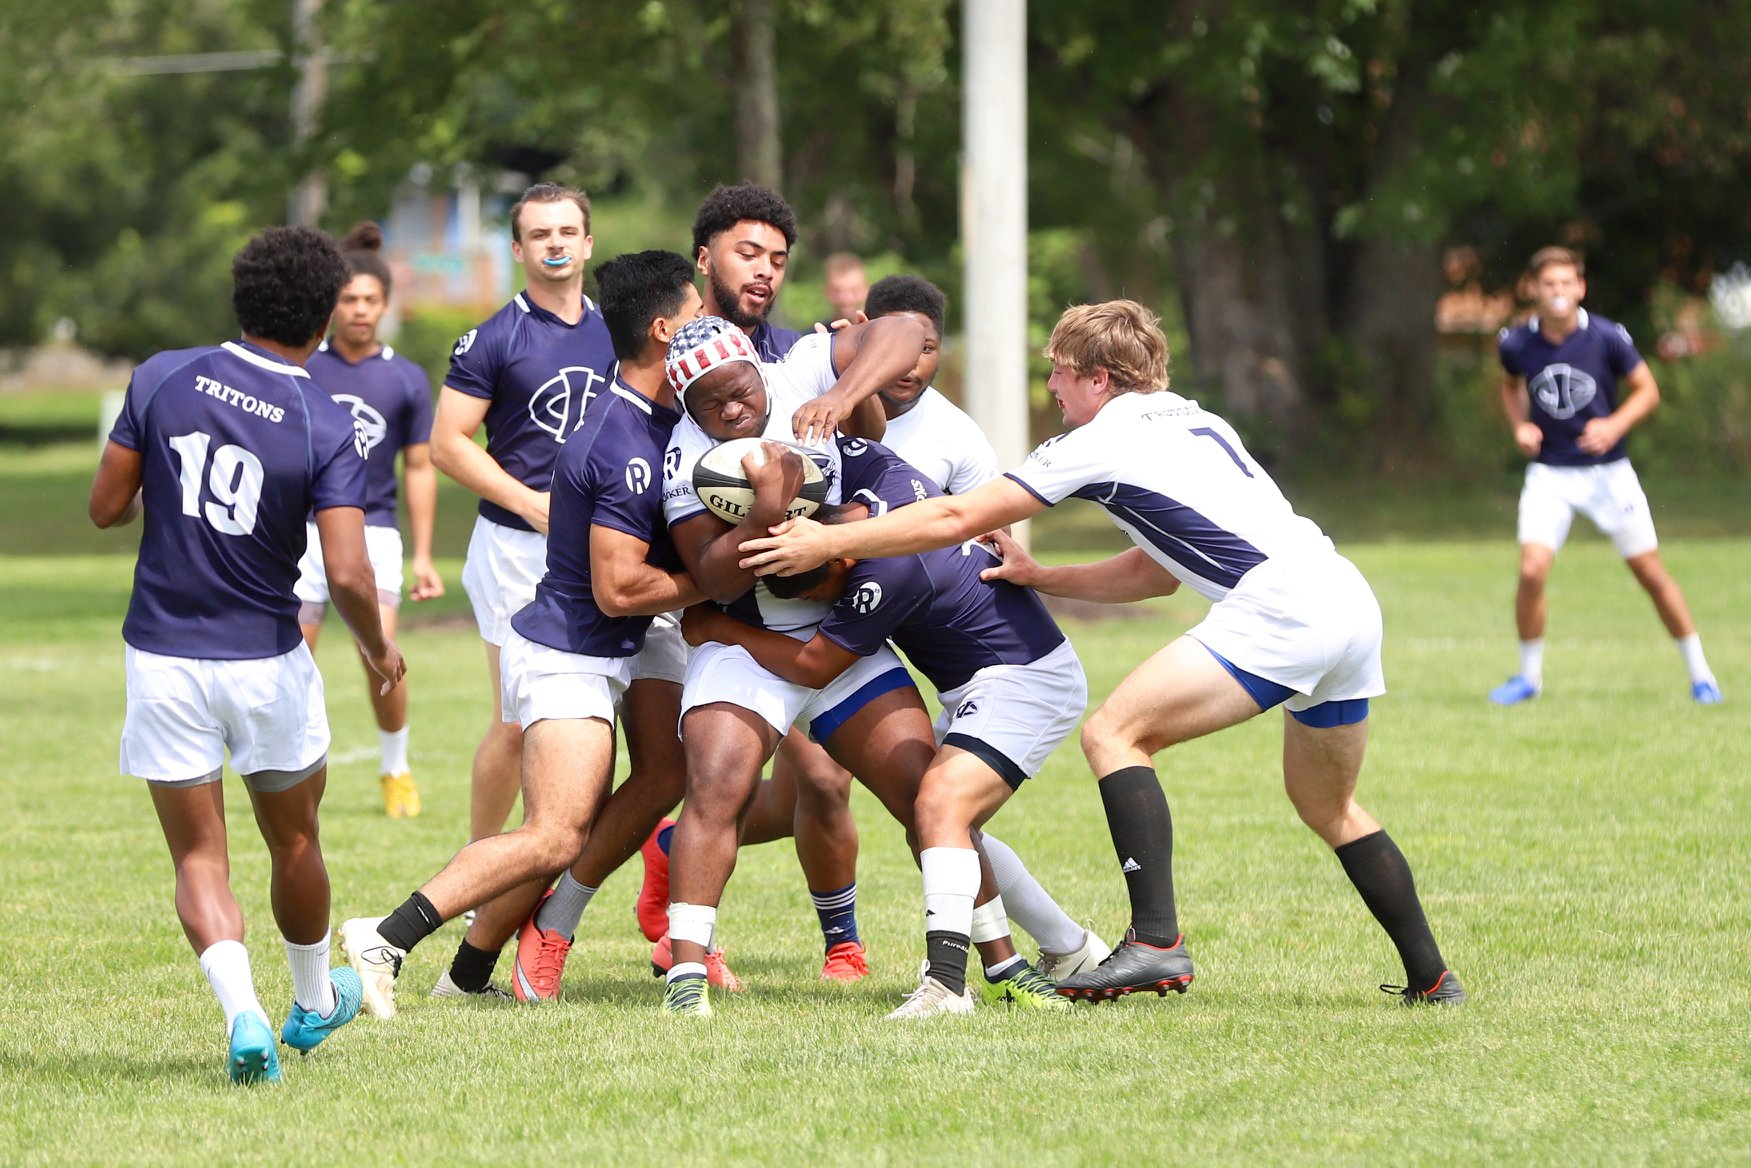 Tritons continue to build rugby program into national contender